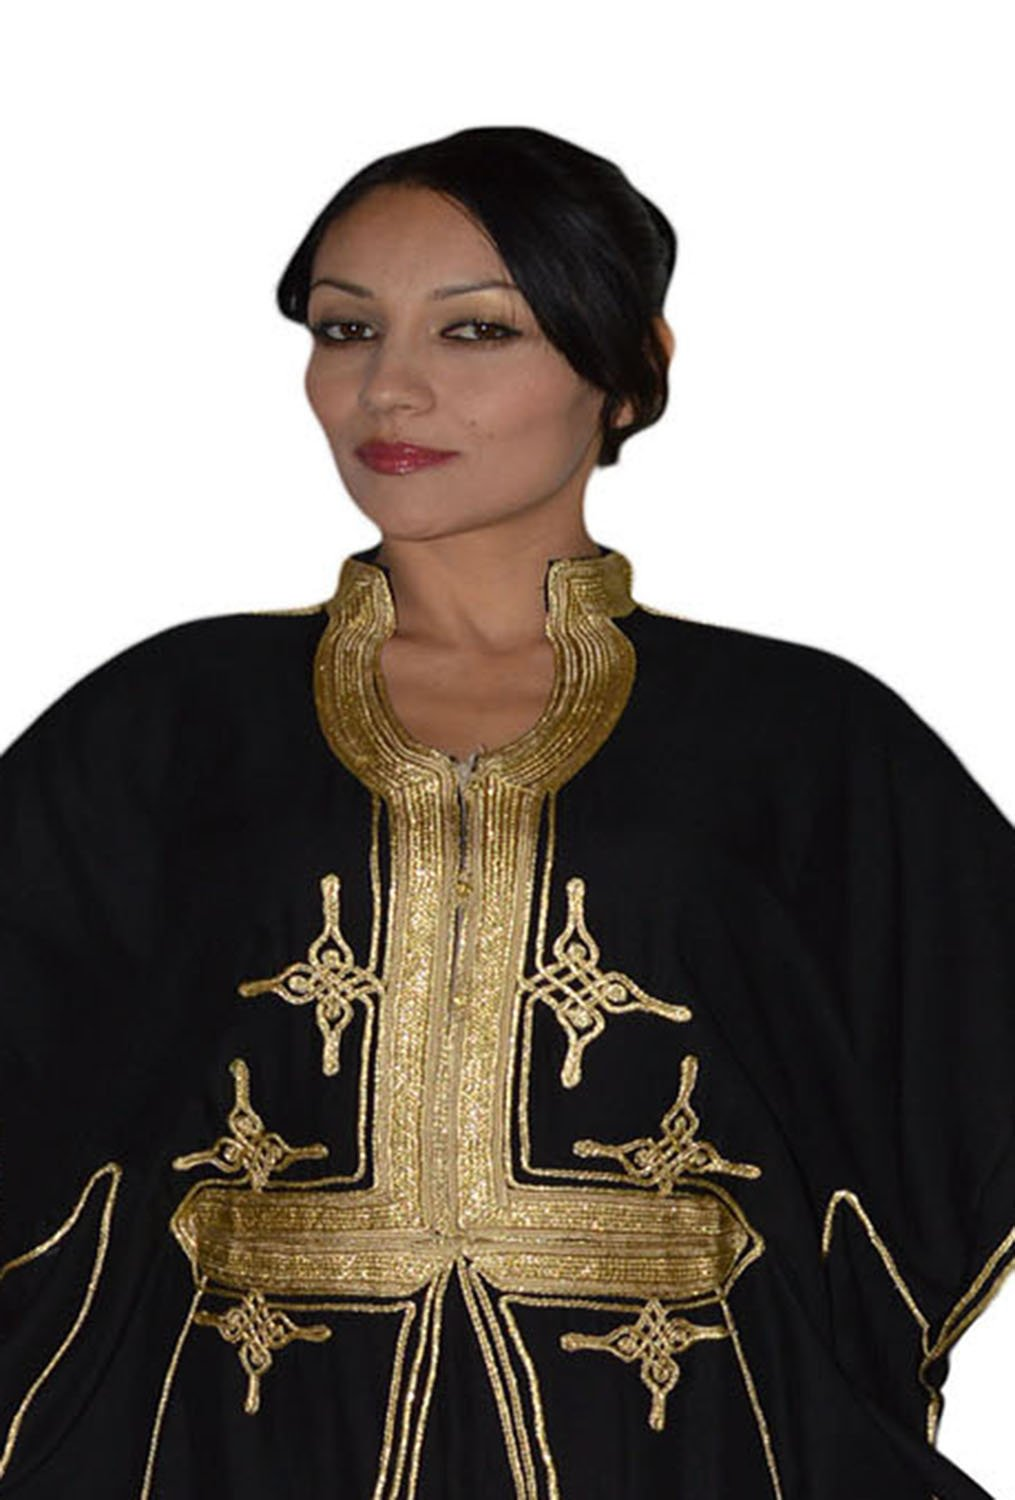 Moroccan Caftan Hand Made Breathable Cotton with Gold Hand Embroidery Long Black by Moroccan Caftans (Image #5)